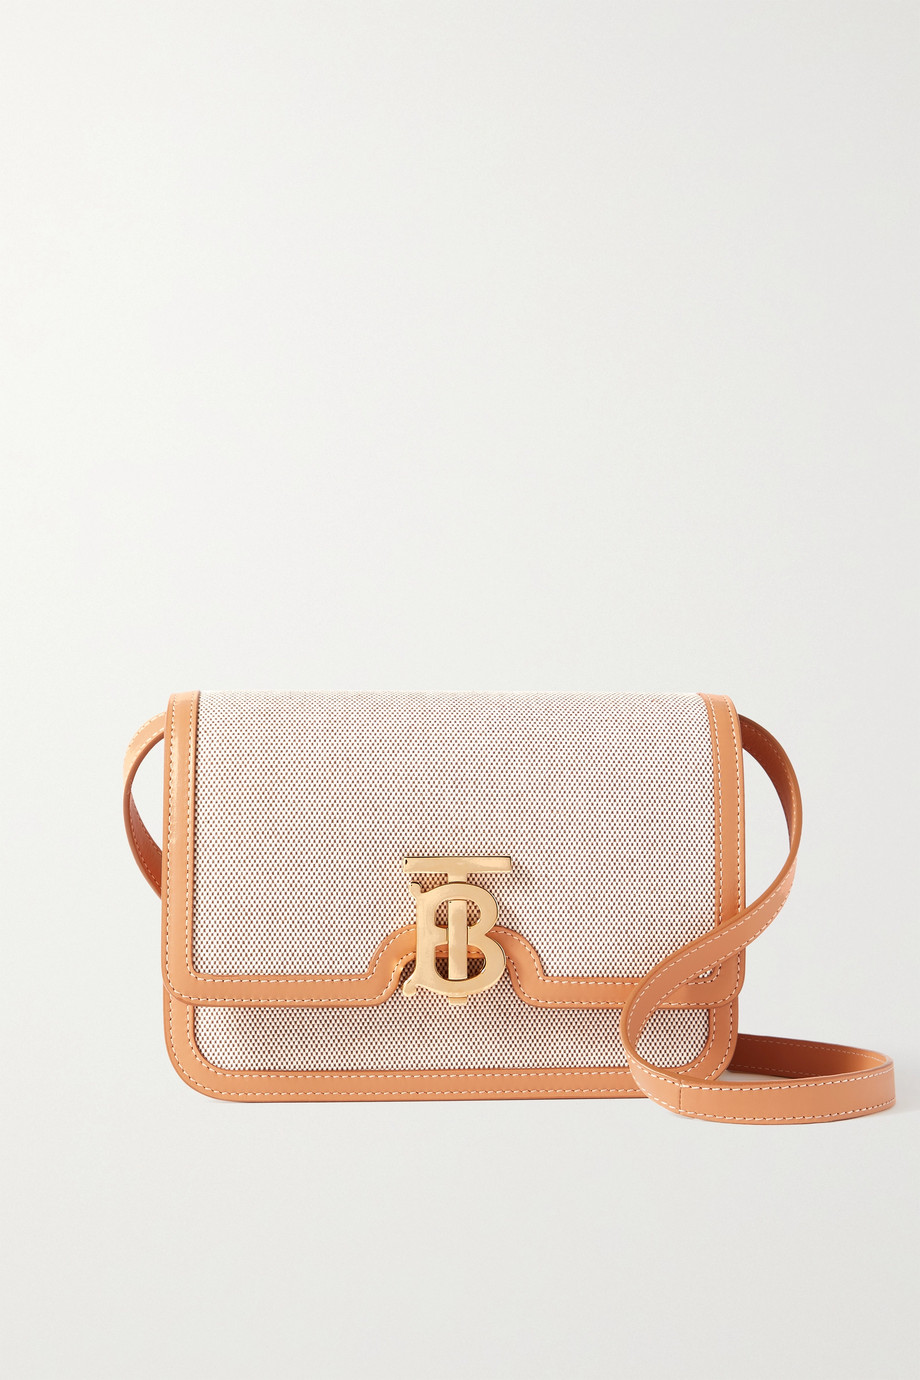 Burberry Small leather-trimmed canvas shoulder bag